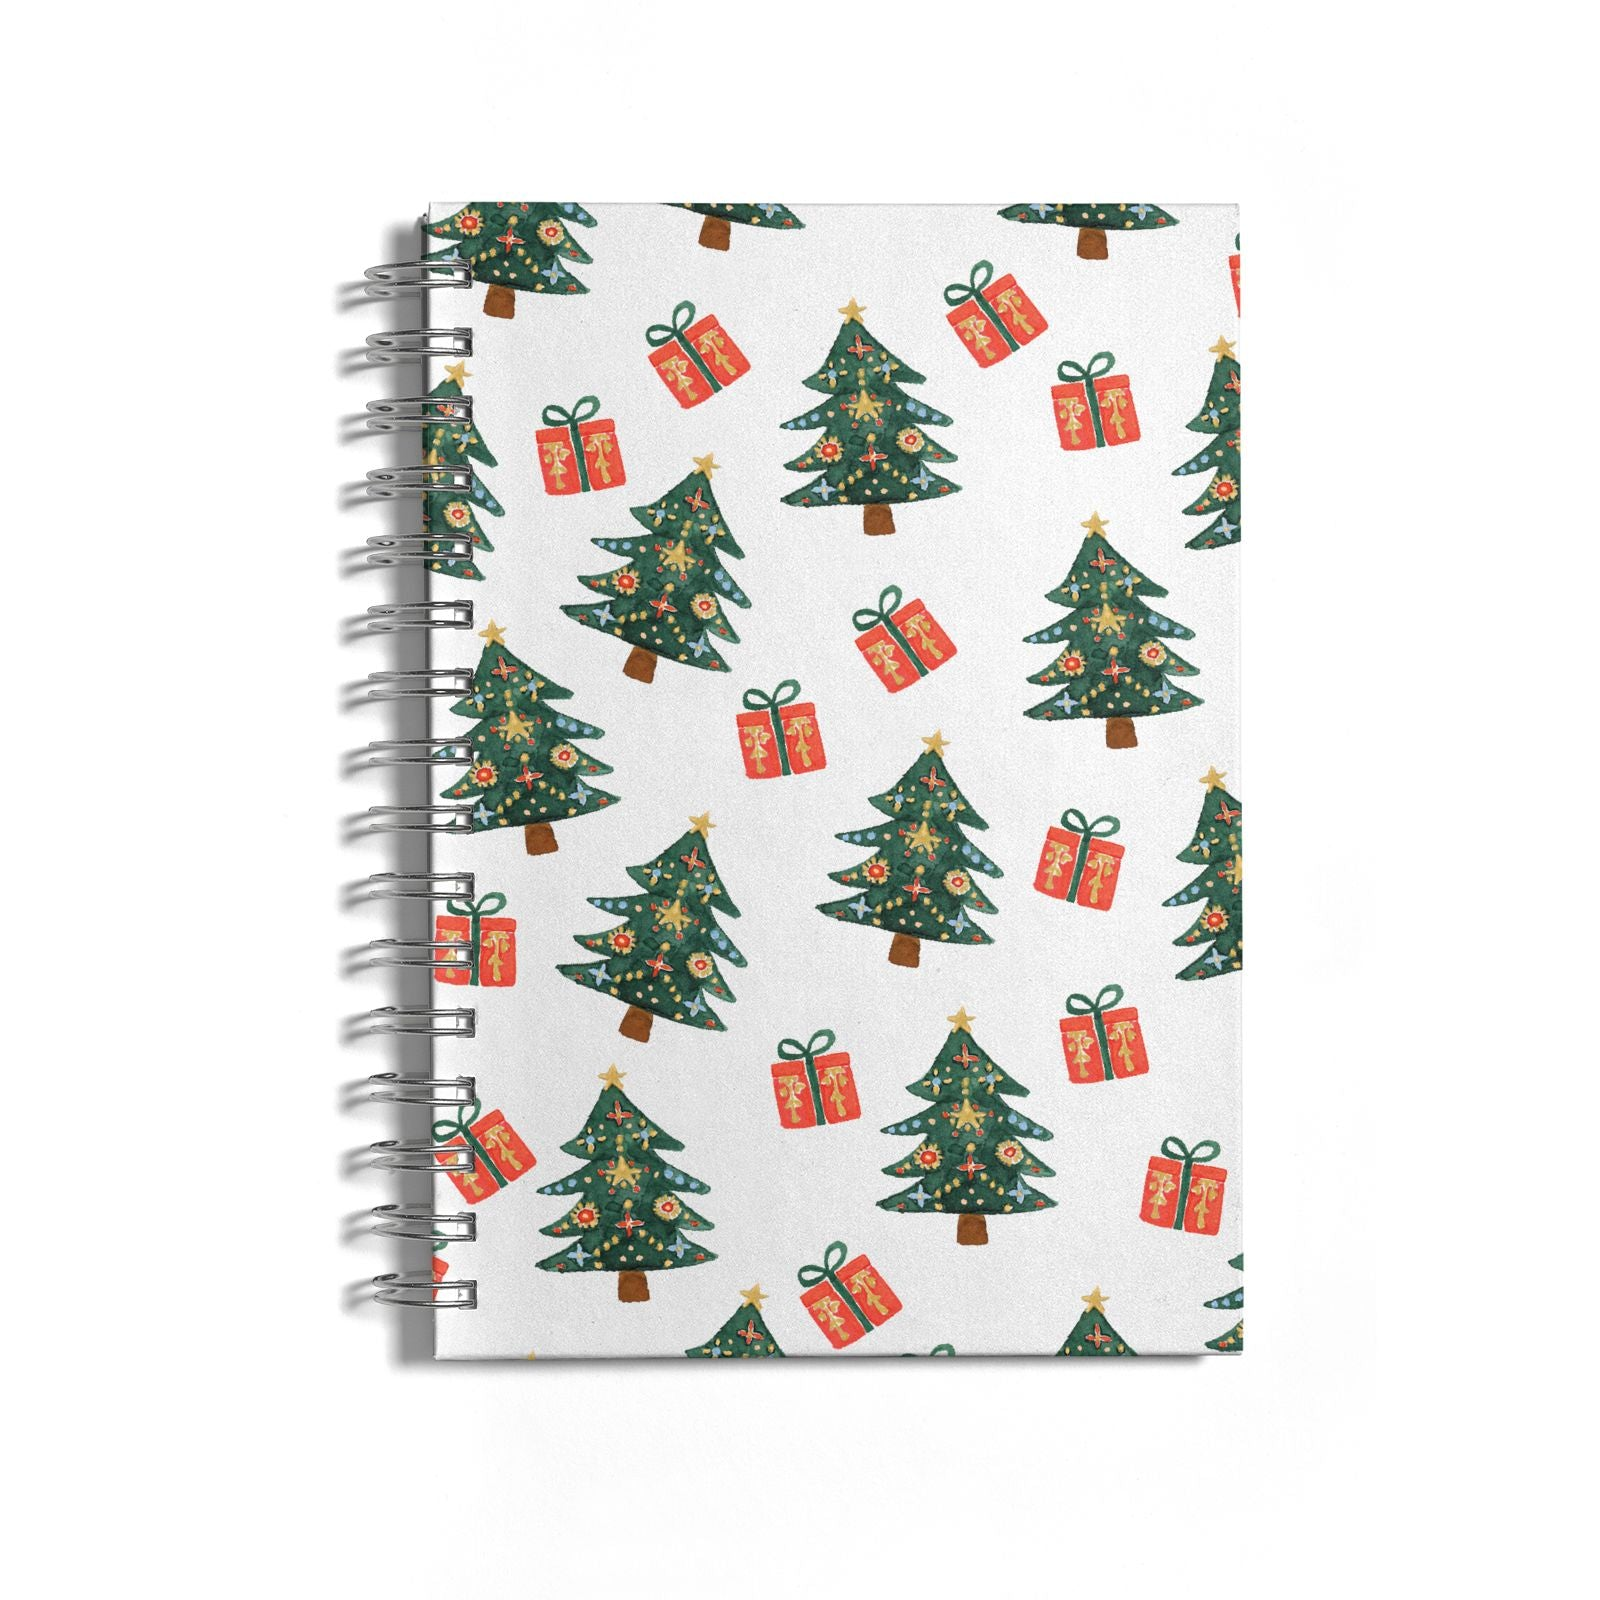 Christmas tree and presents Notebook with Silver Coil